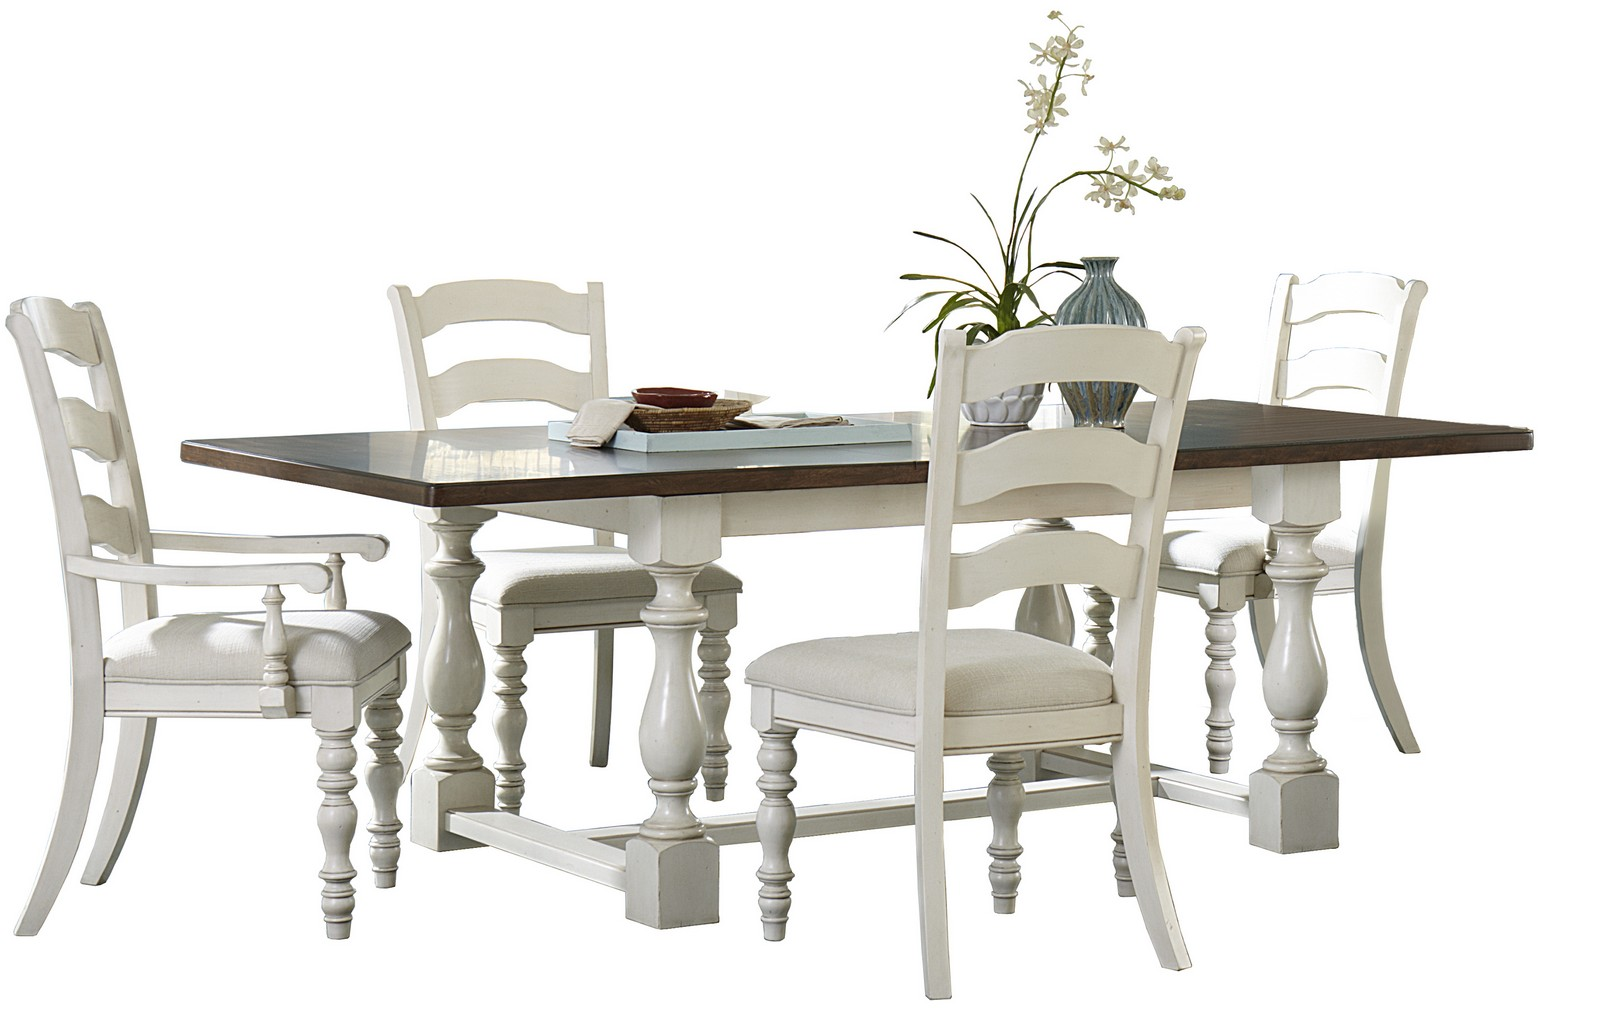 Hillsdale Pine Island 5 Pc Trestle Dining Set With Ladder